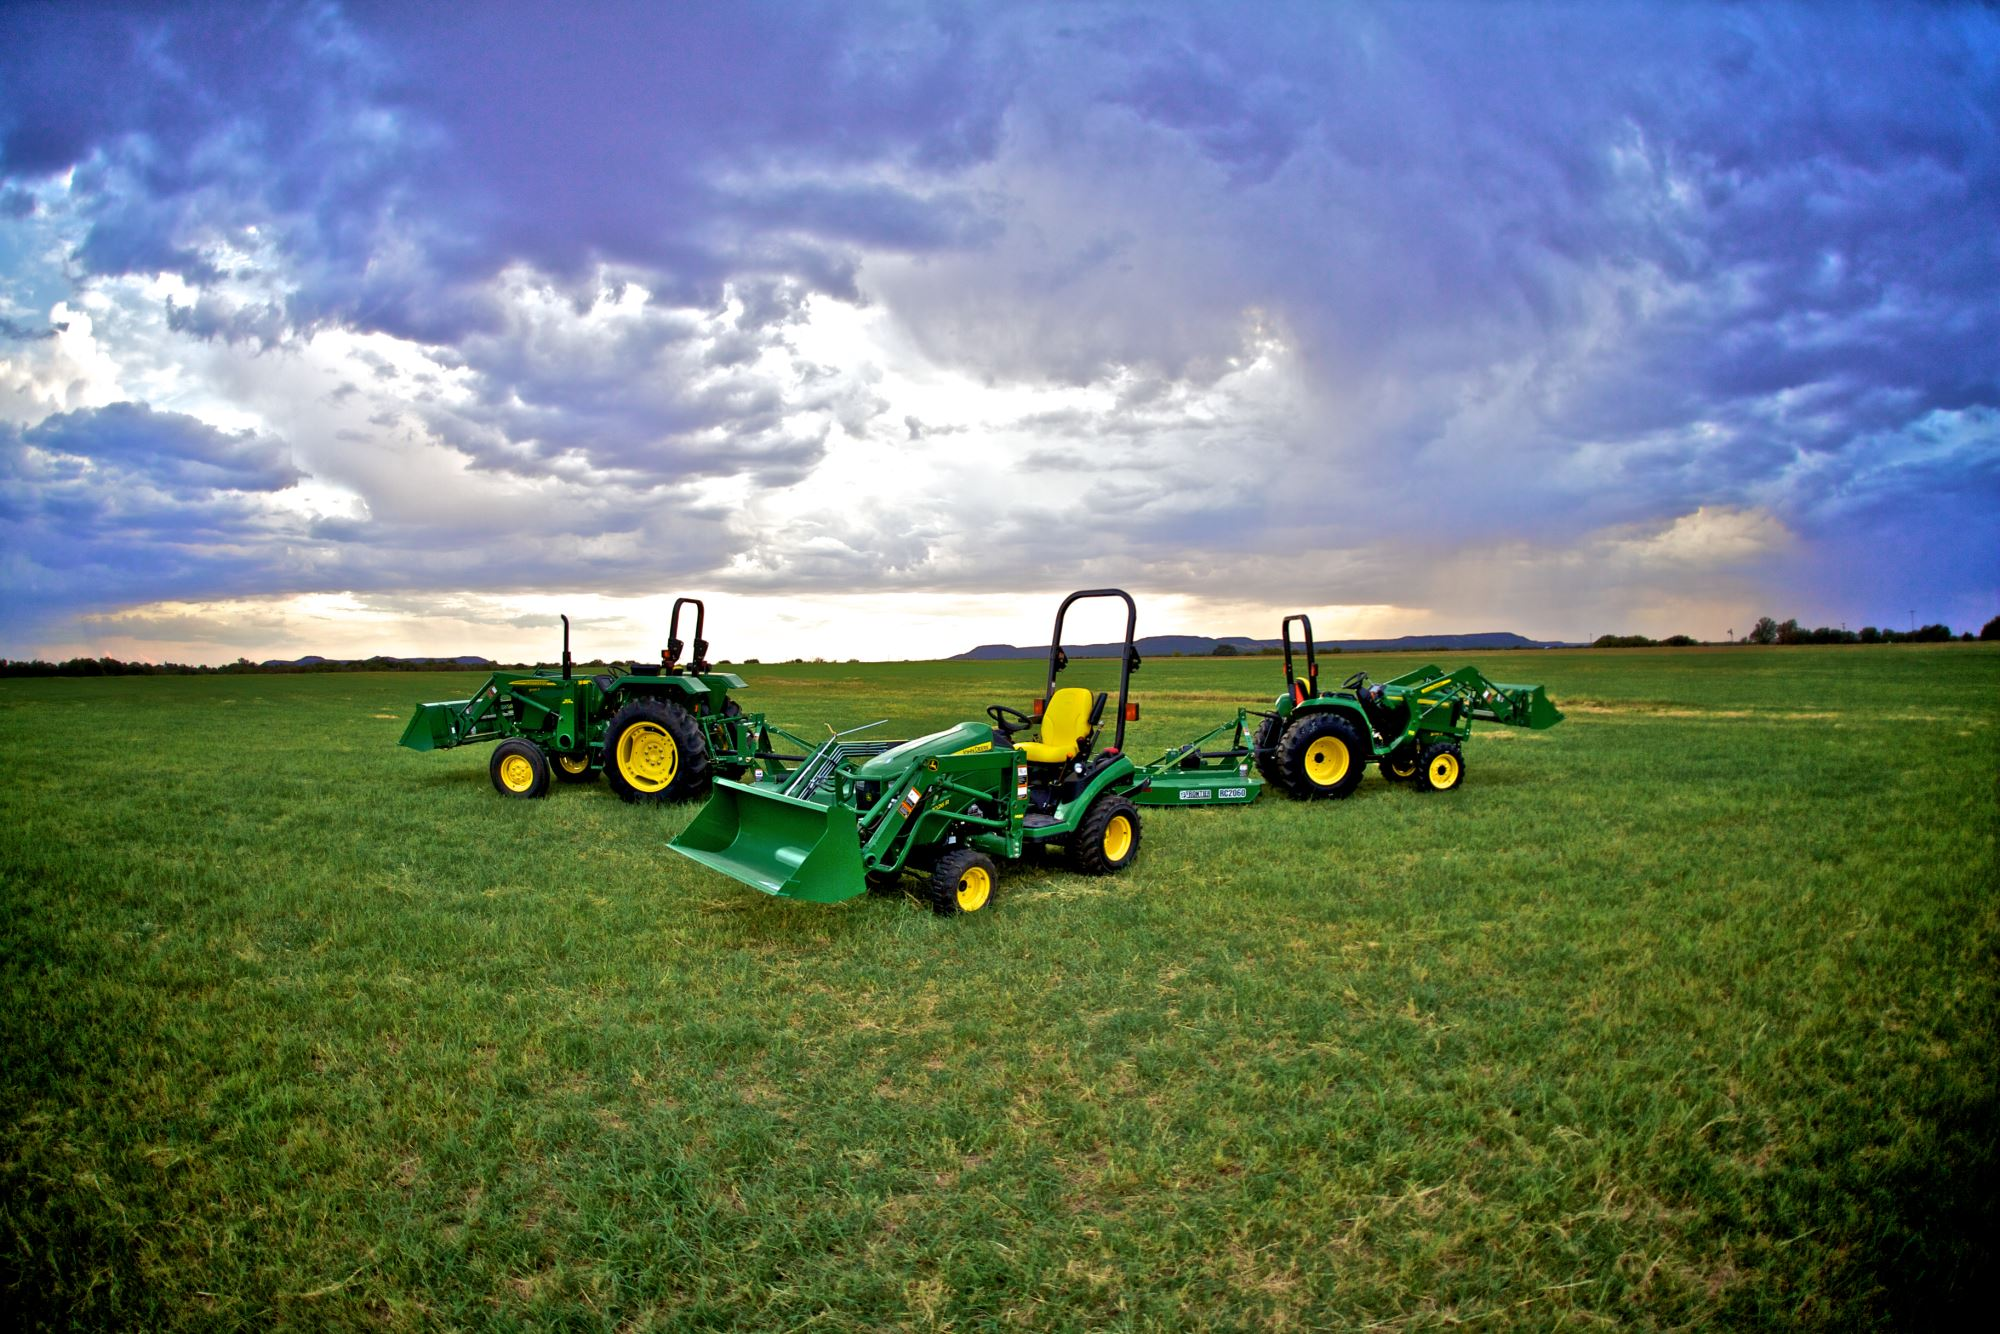 John Deere Field of Tractors